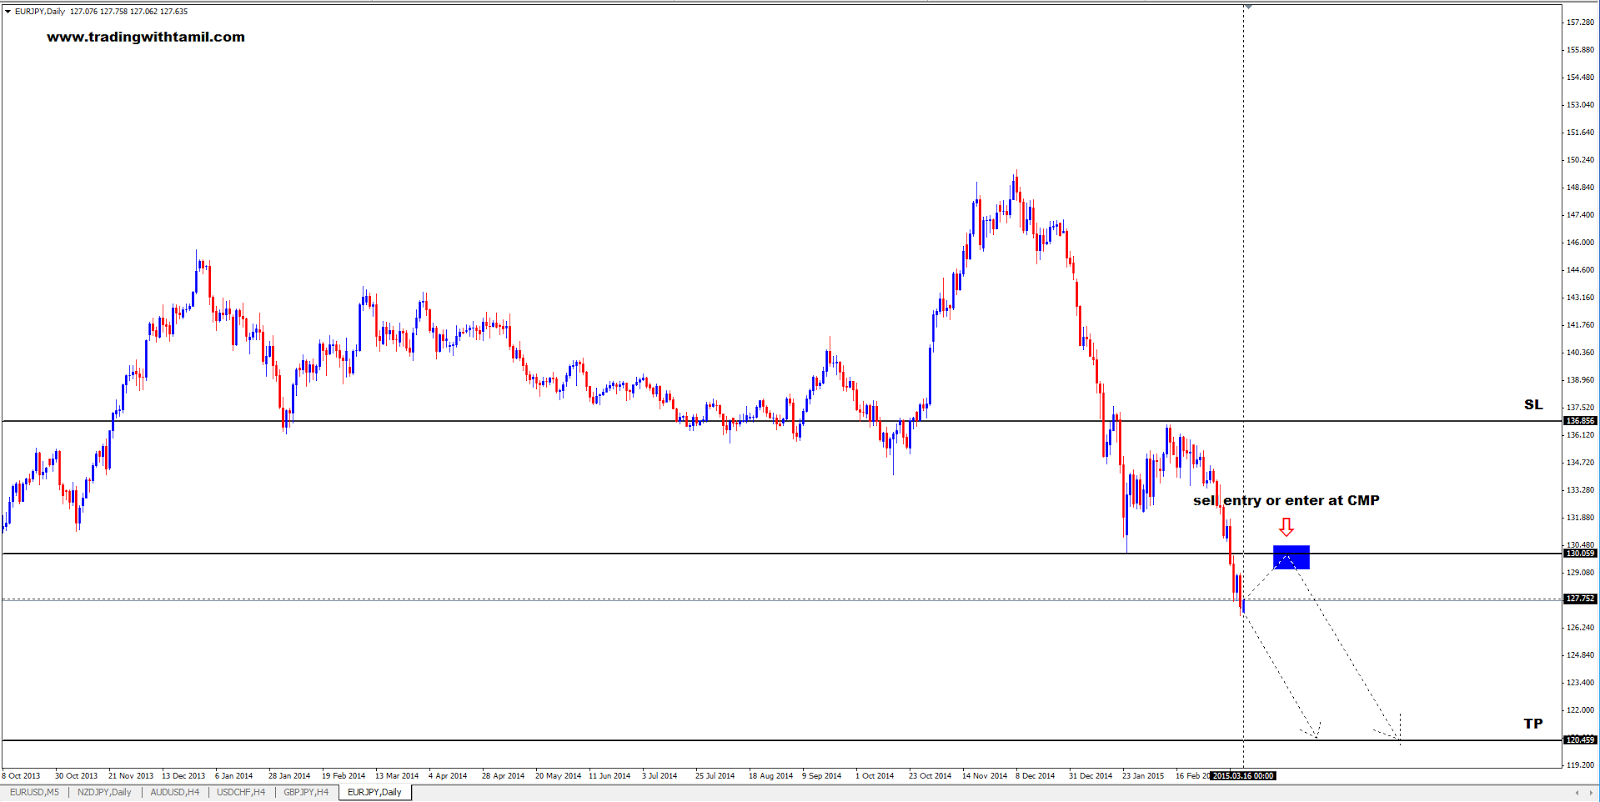 Q-FOREX LIVE CHALLENGING SIGNAL 16 Mar 2015 – SELL EUR/JPY